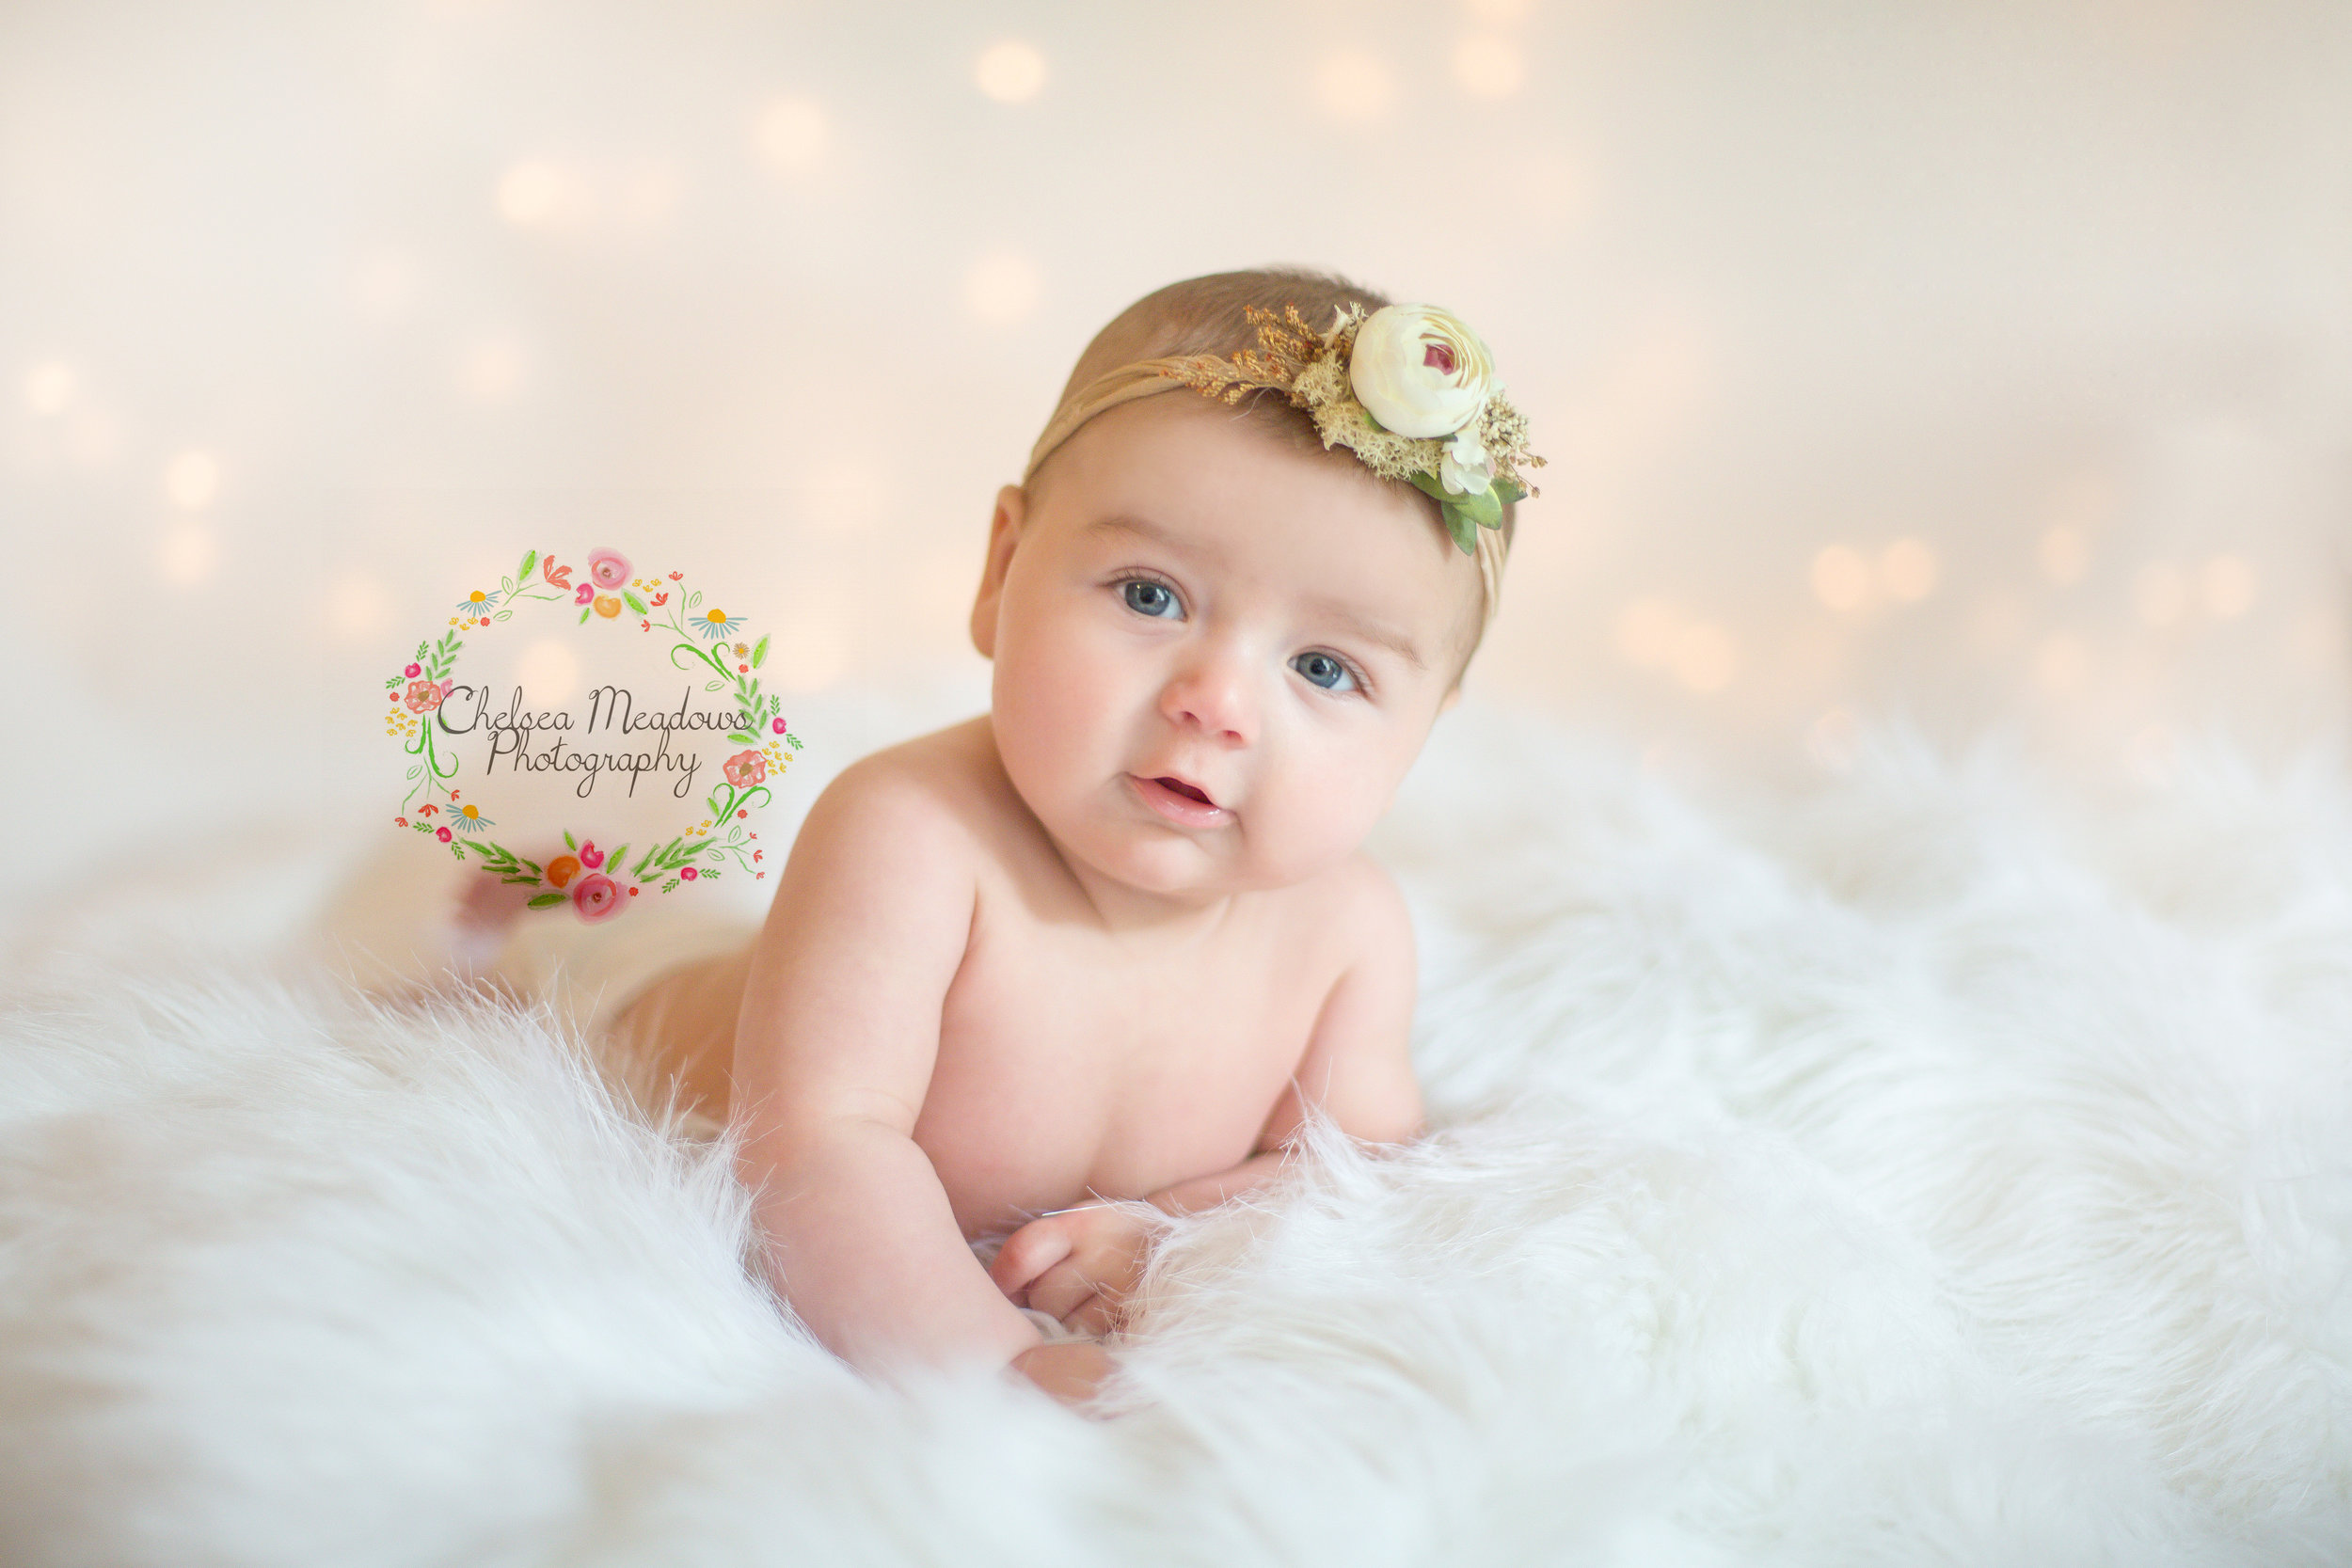 Ava's 2 Month Session - Chelsea Meadows Photography (4)_edited-1.jpg